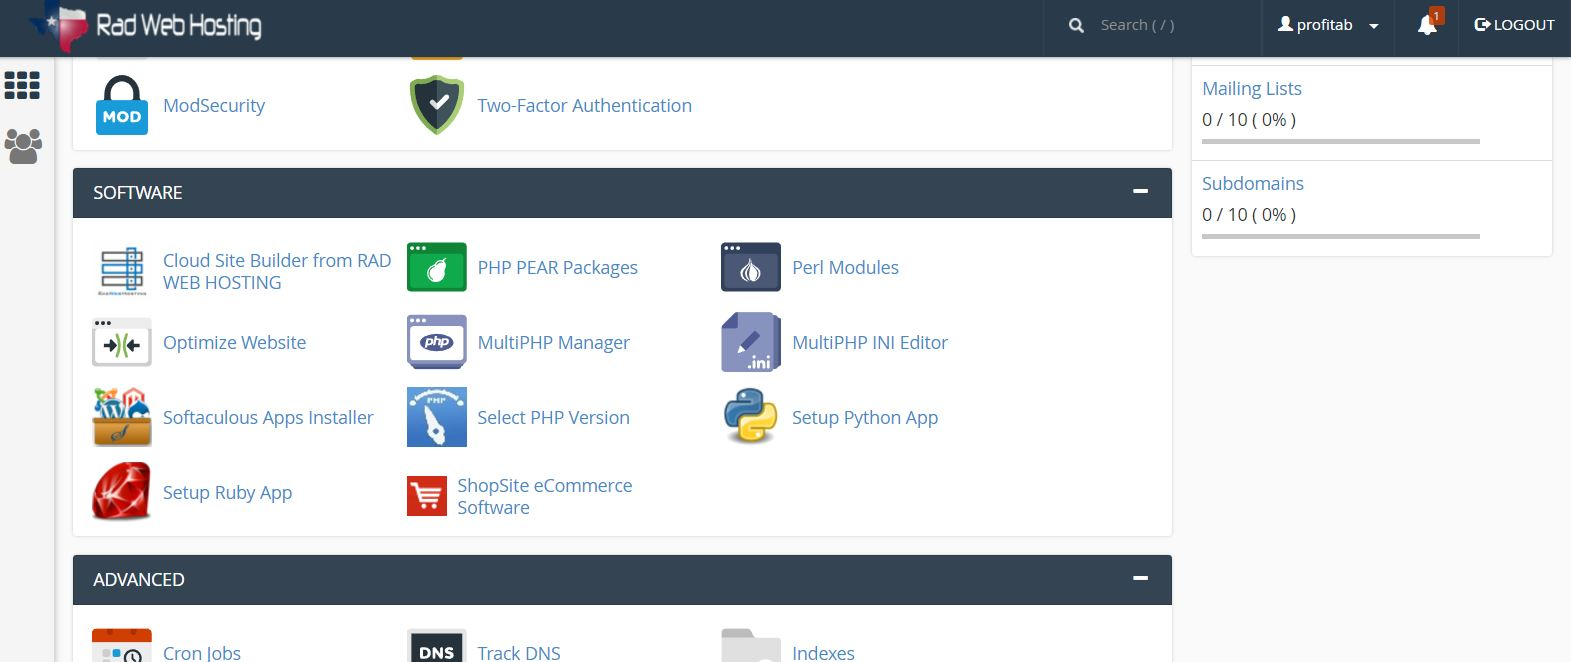 Access Cloud Site Builder from cPanel account